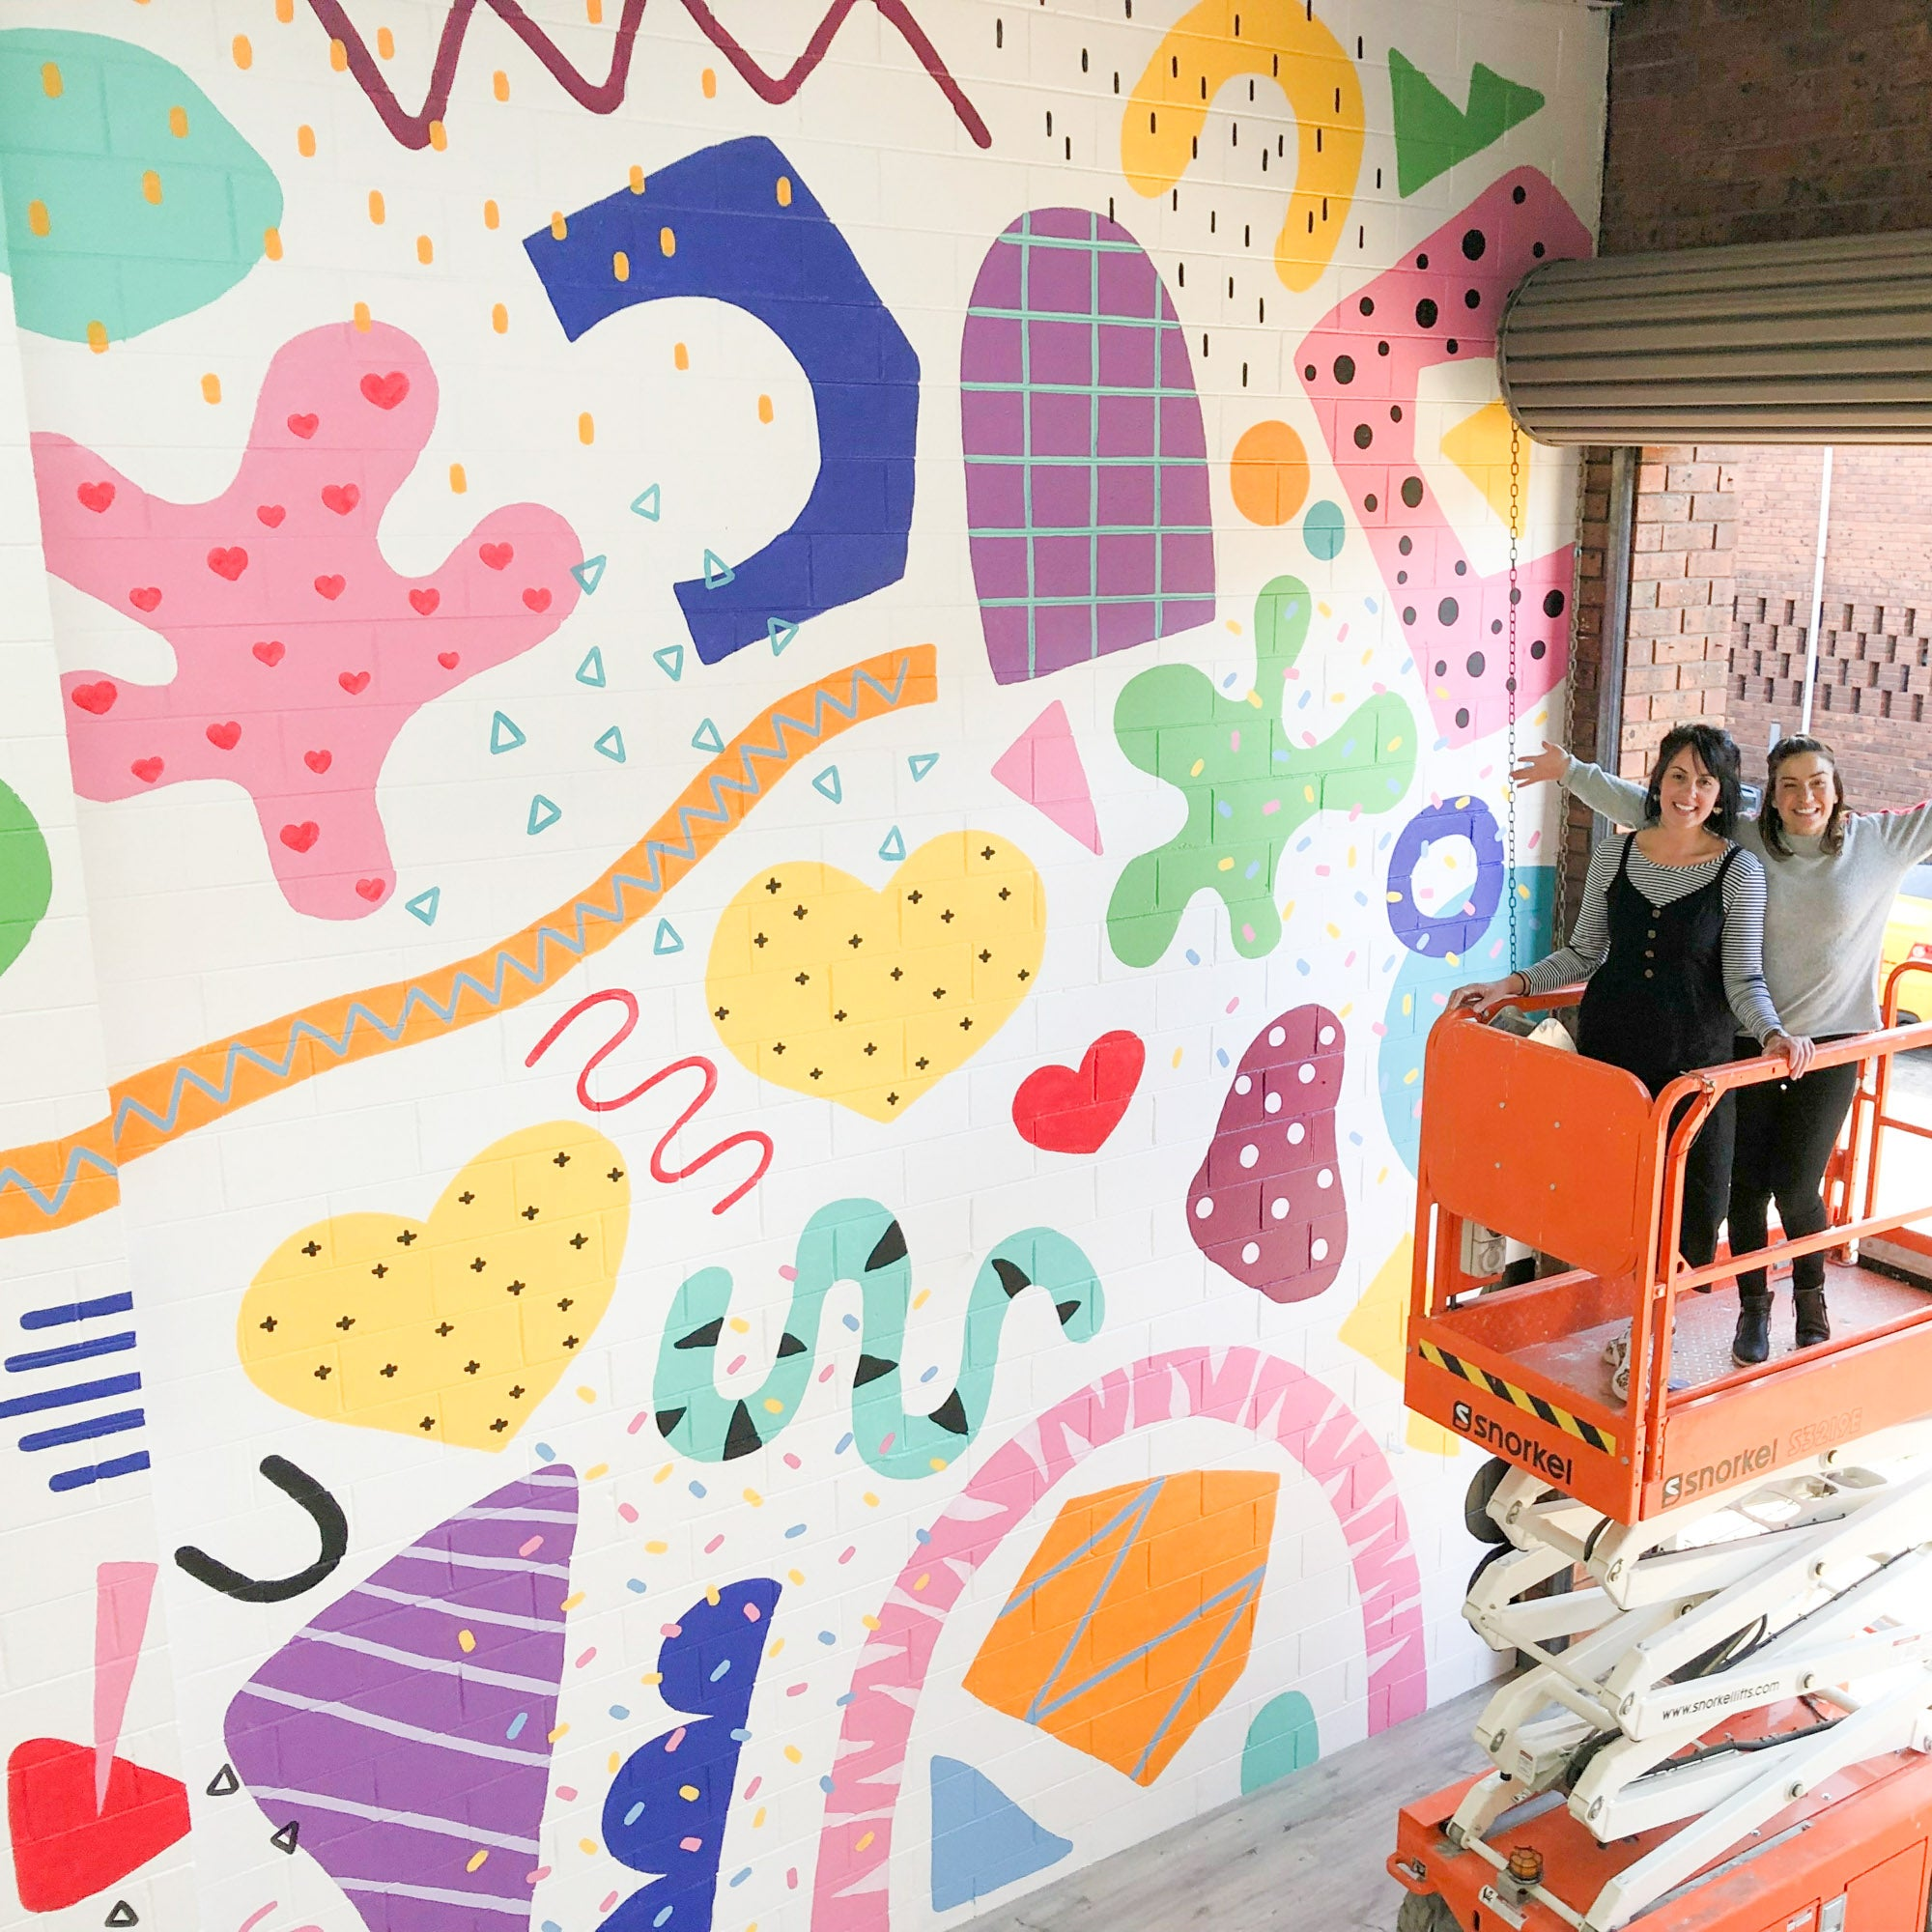 Deb McNaughton Artist - finished work- Massive wall mural - painting on forklift - Big wall - Sweetsticks -  Melbourne